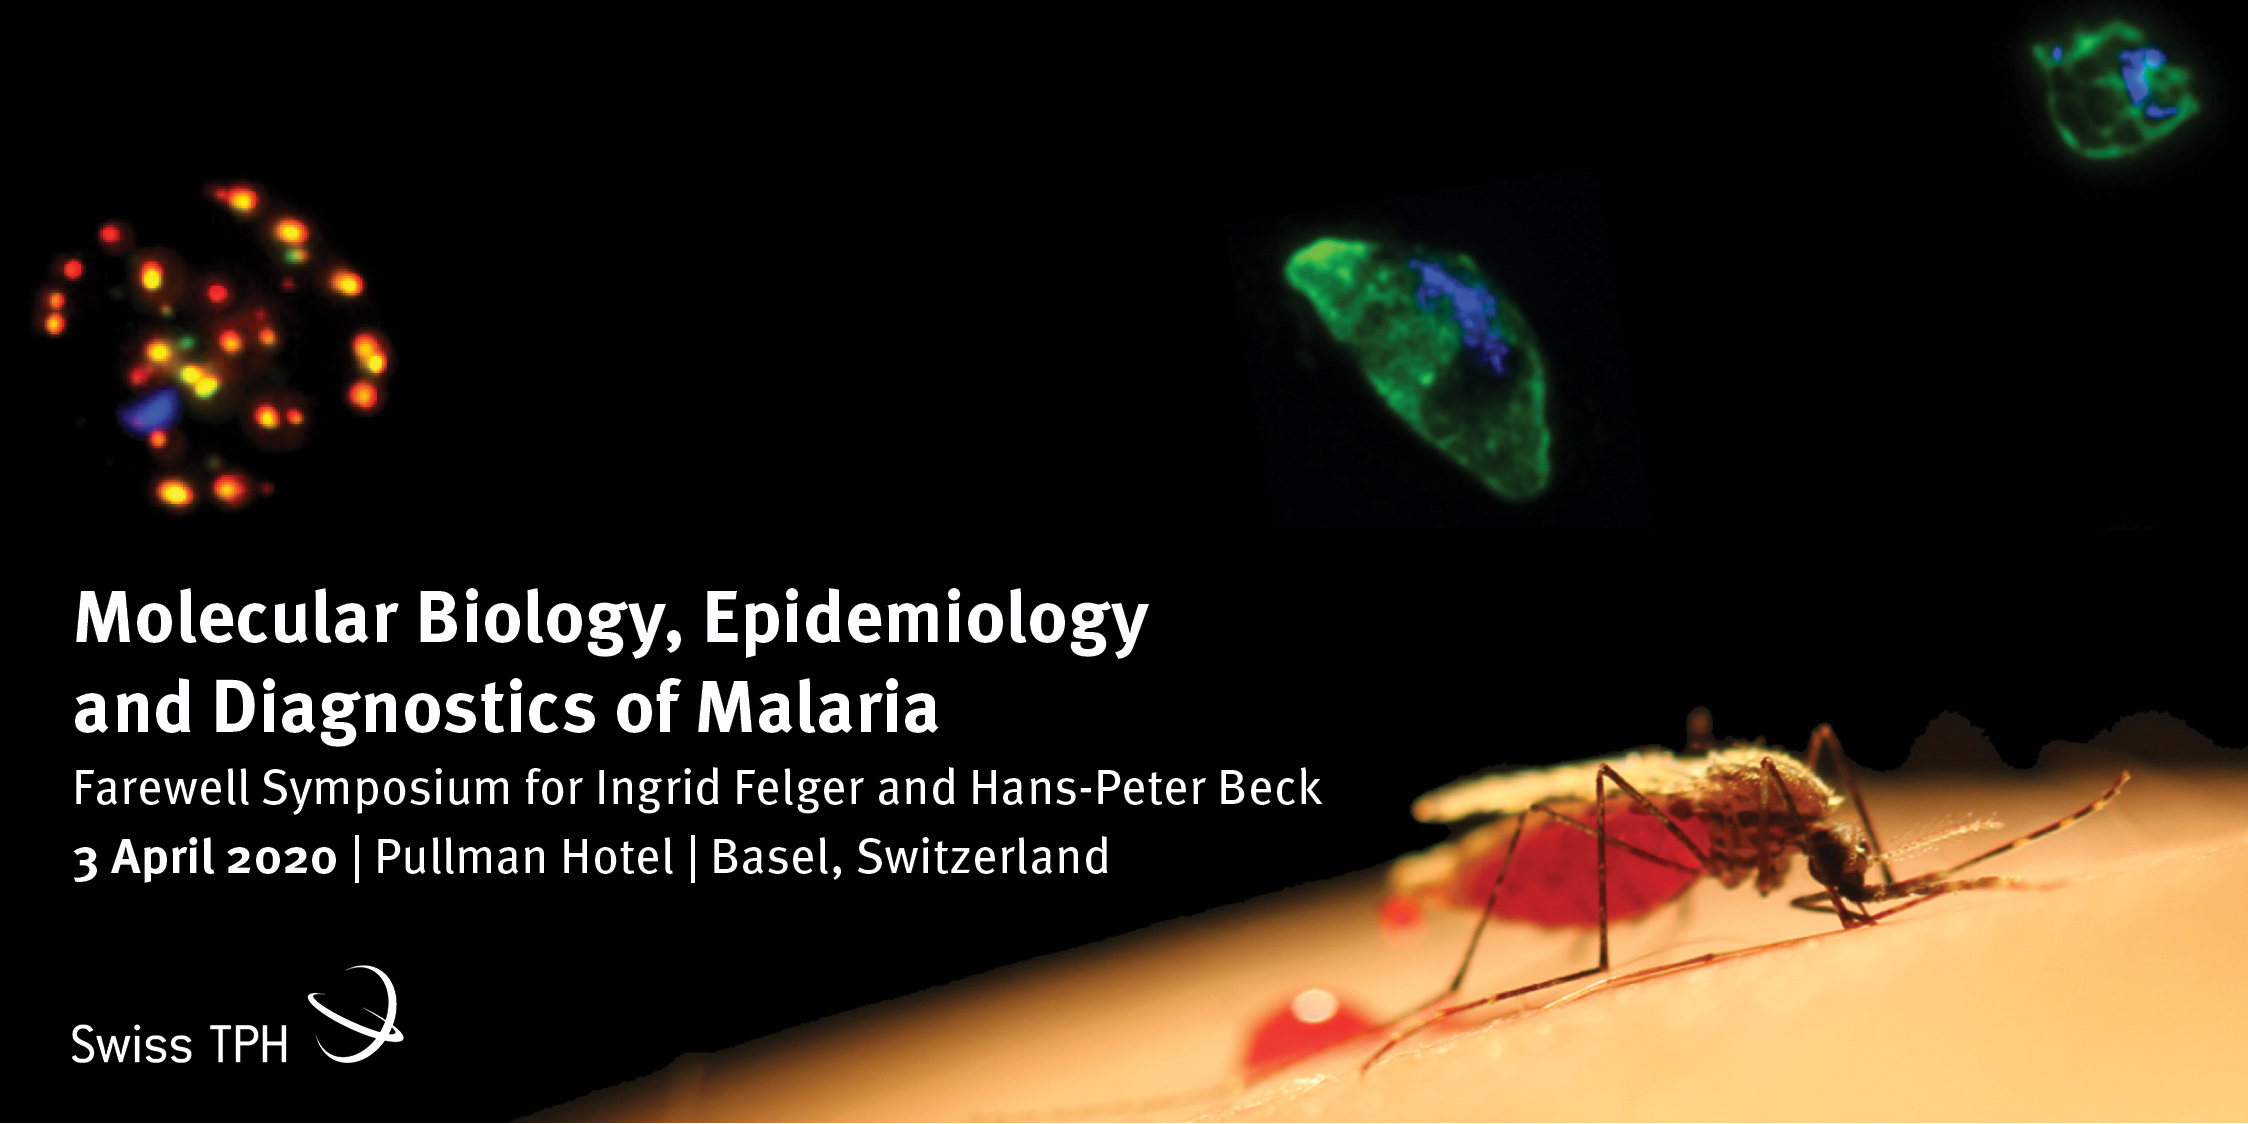 Swiss TPH Symposium on Molecular Biology, Epidemiology and Diagnostics of Malaria